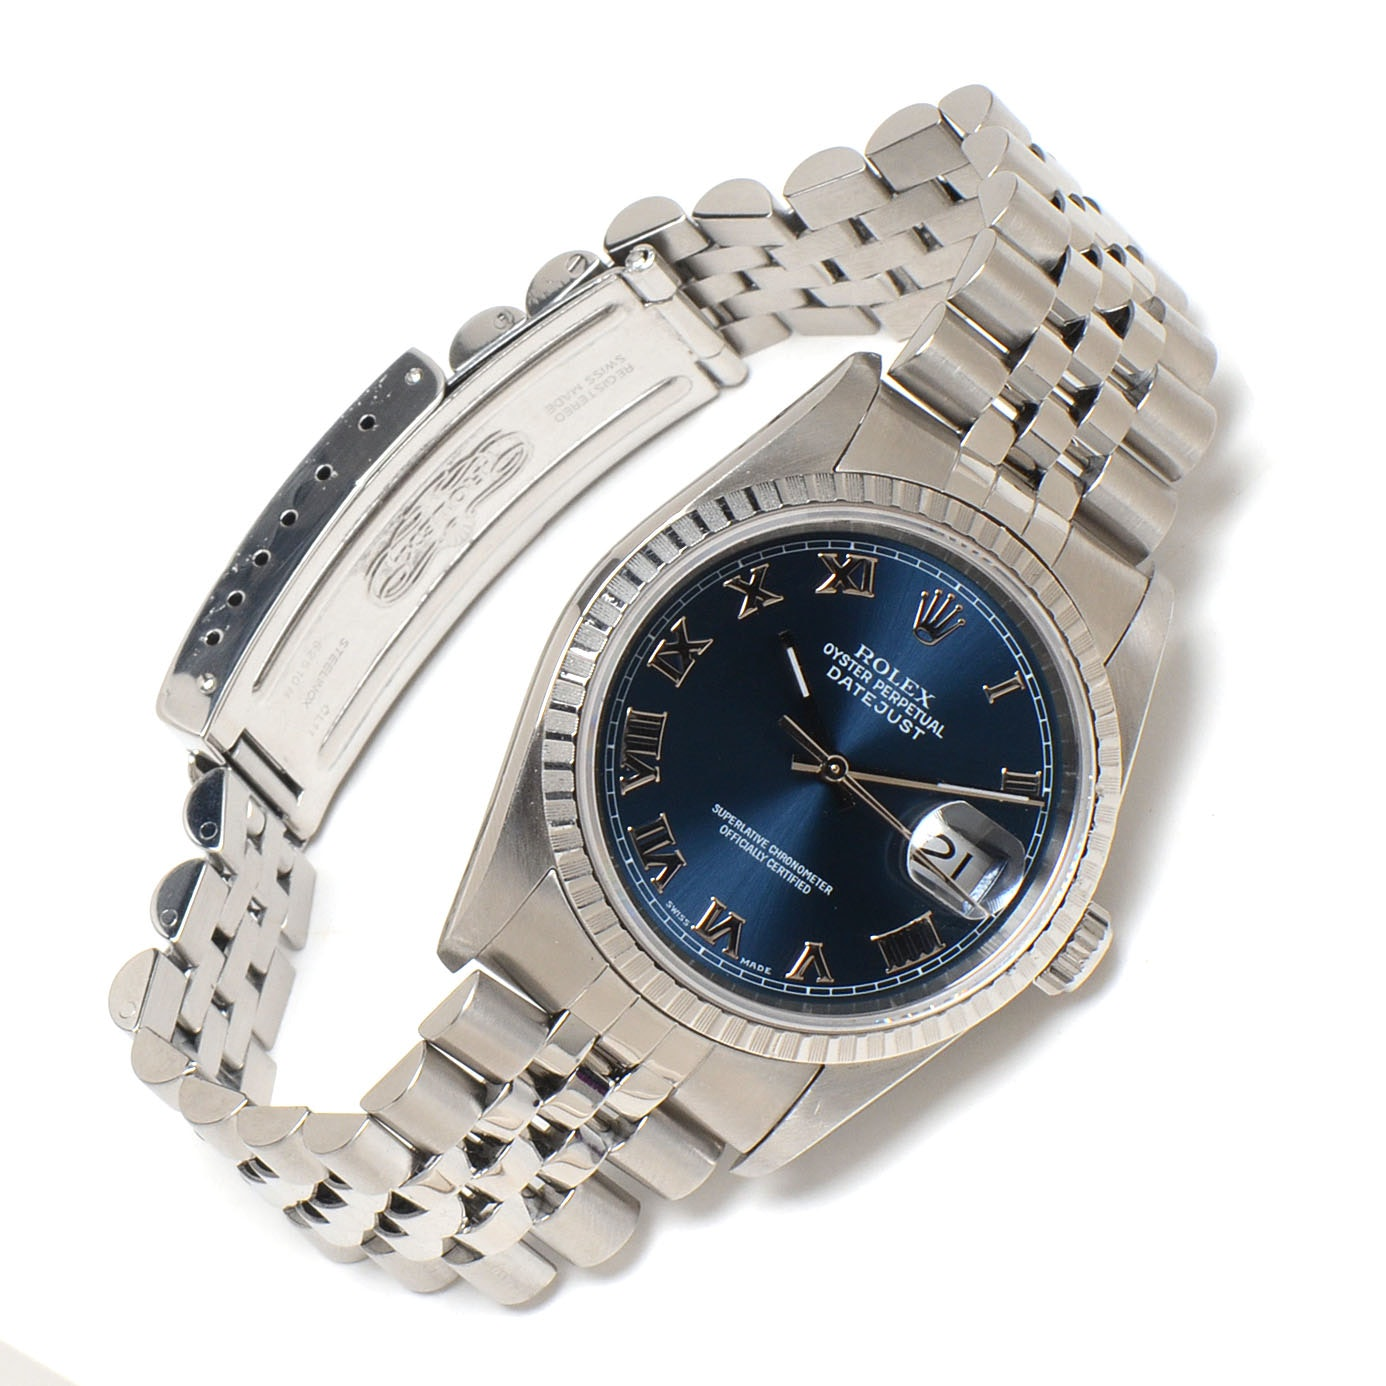 Men's Rolex Datejust Steel 16220 Blue Roman Dial Automatic Watch